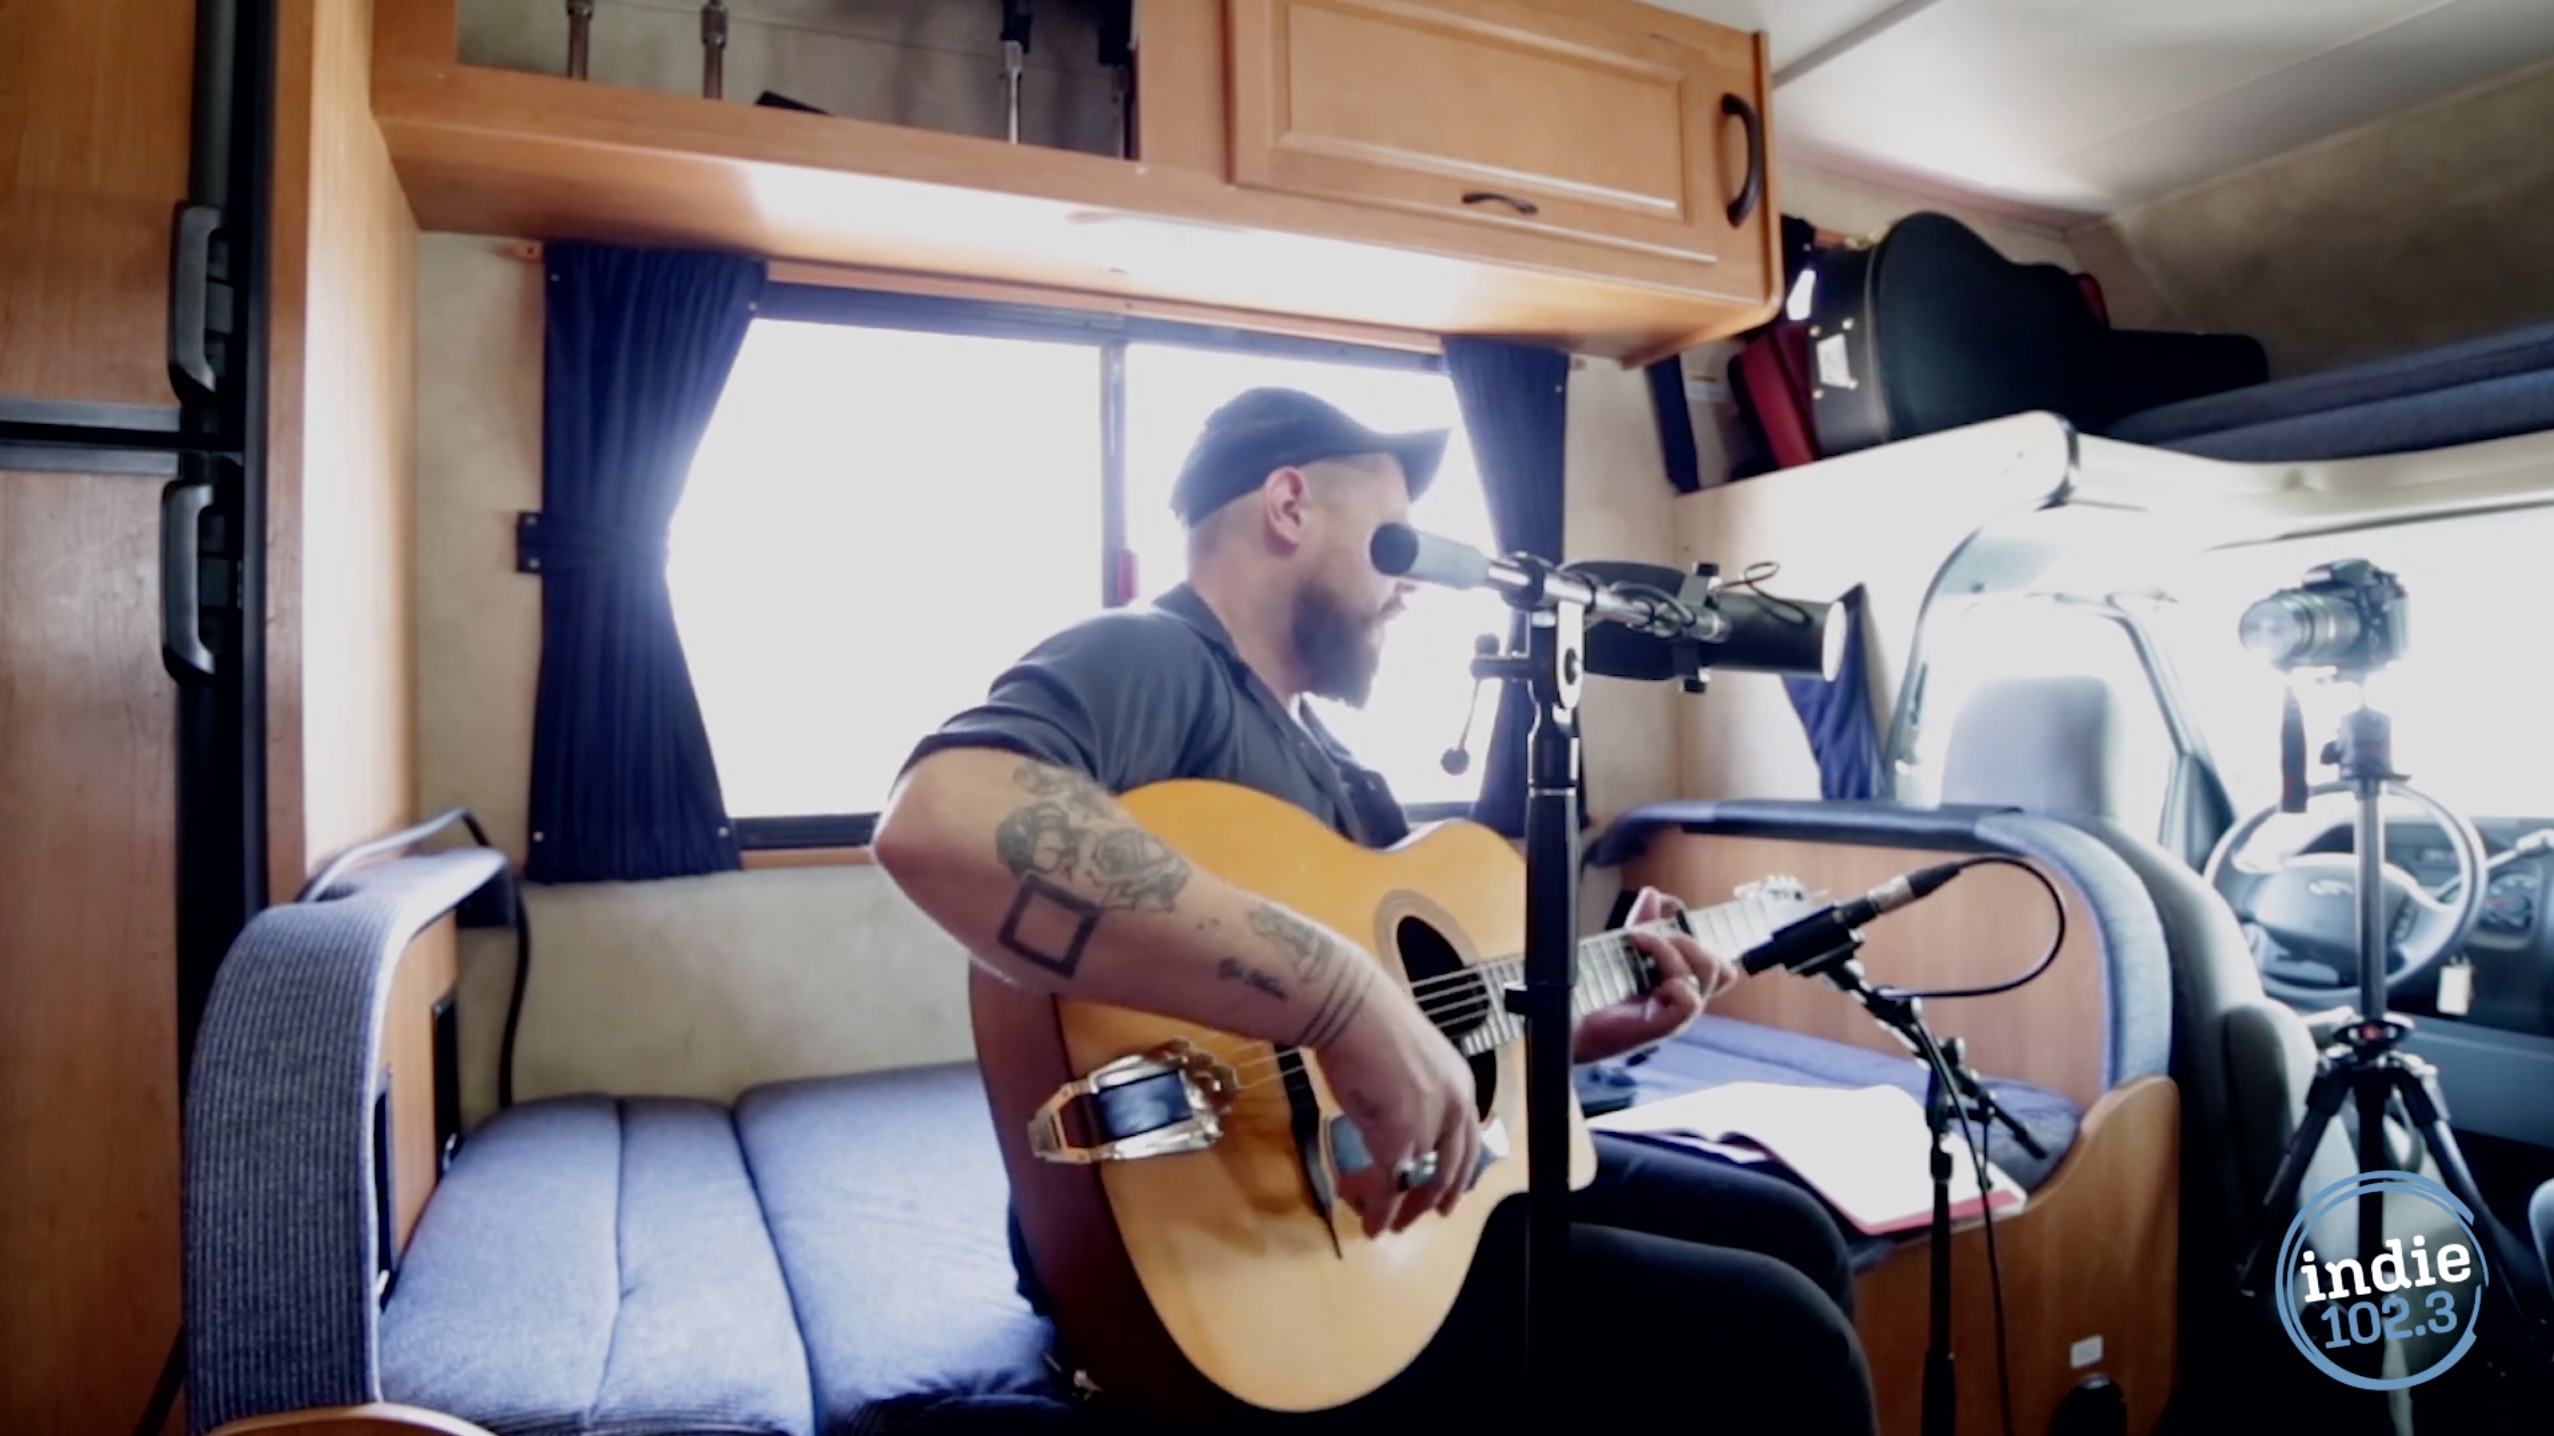 In the video above, Nathaniel Rateliff stopped by our RV during the Underground Music Showcase in 2014 and recorded a session.